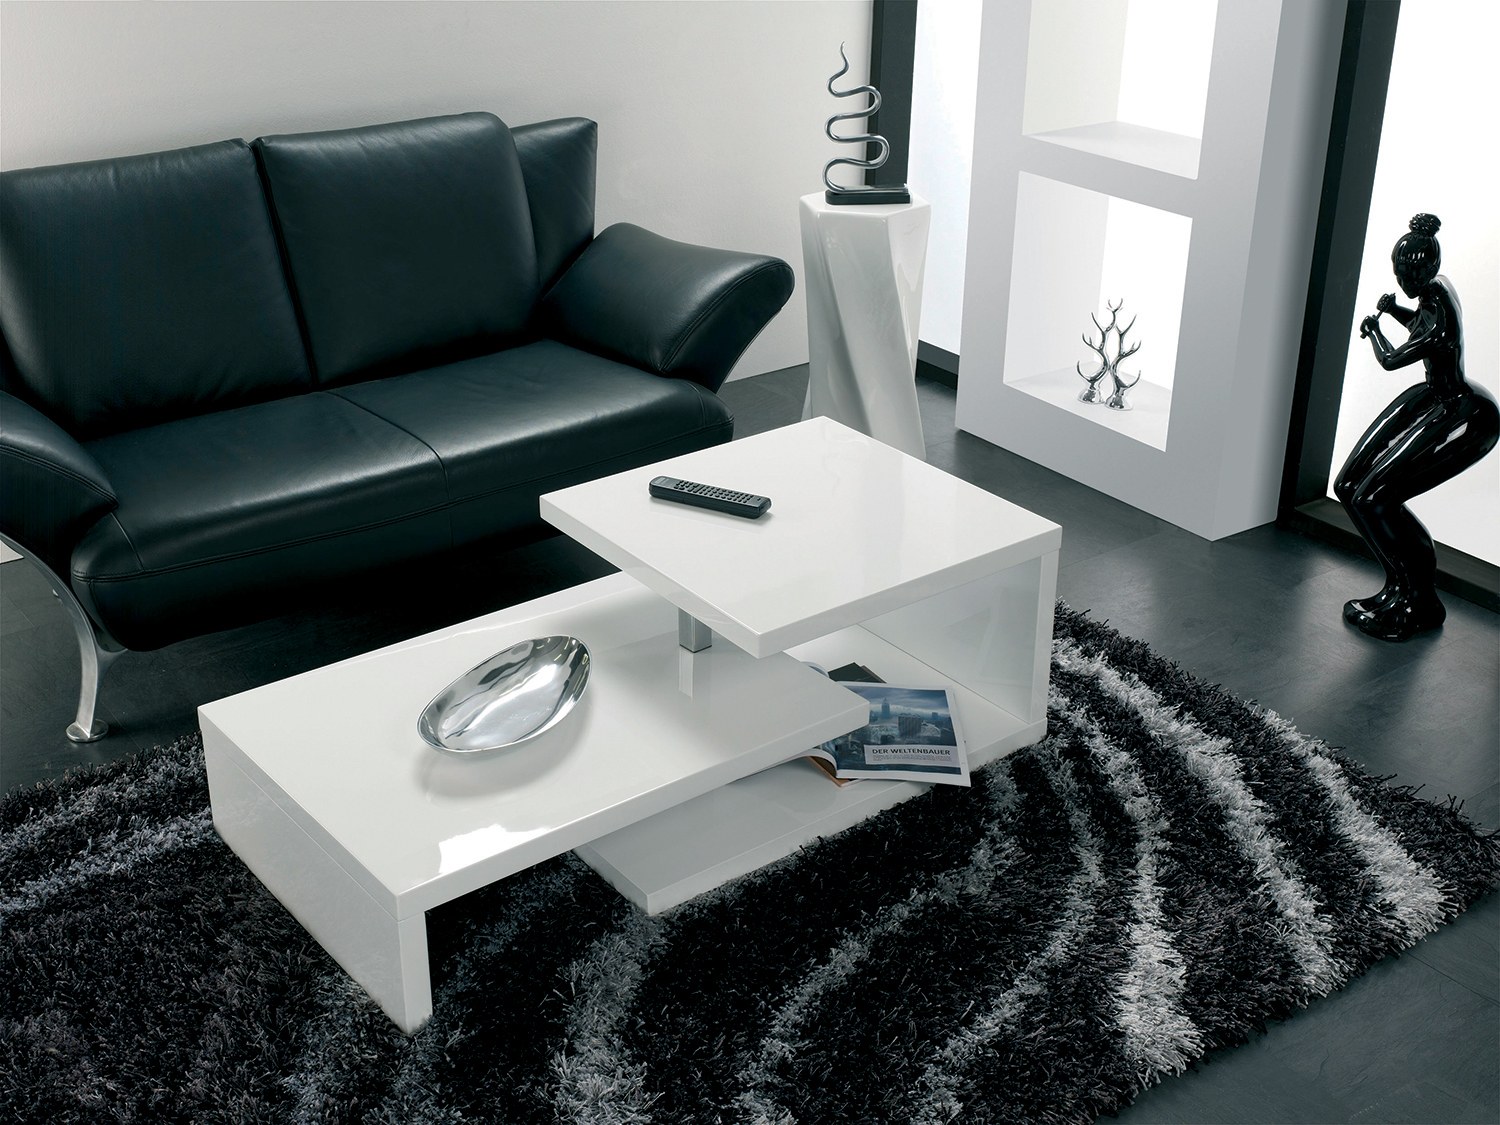 Table Salon Blanc Bien Choisir Une Table Basse Pour Son Salon